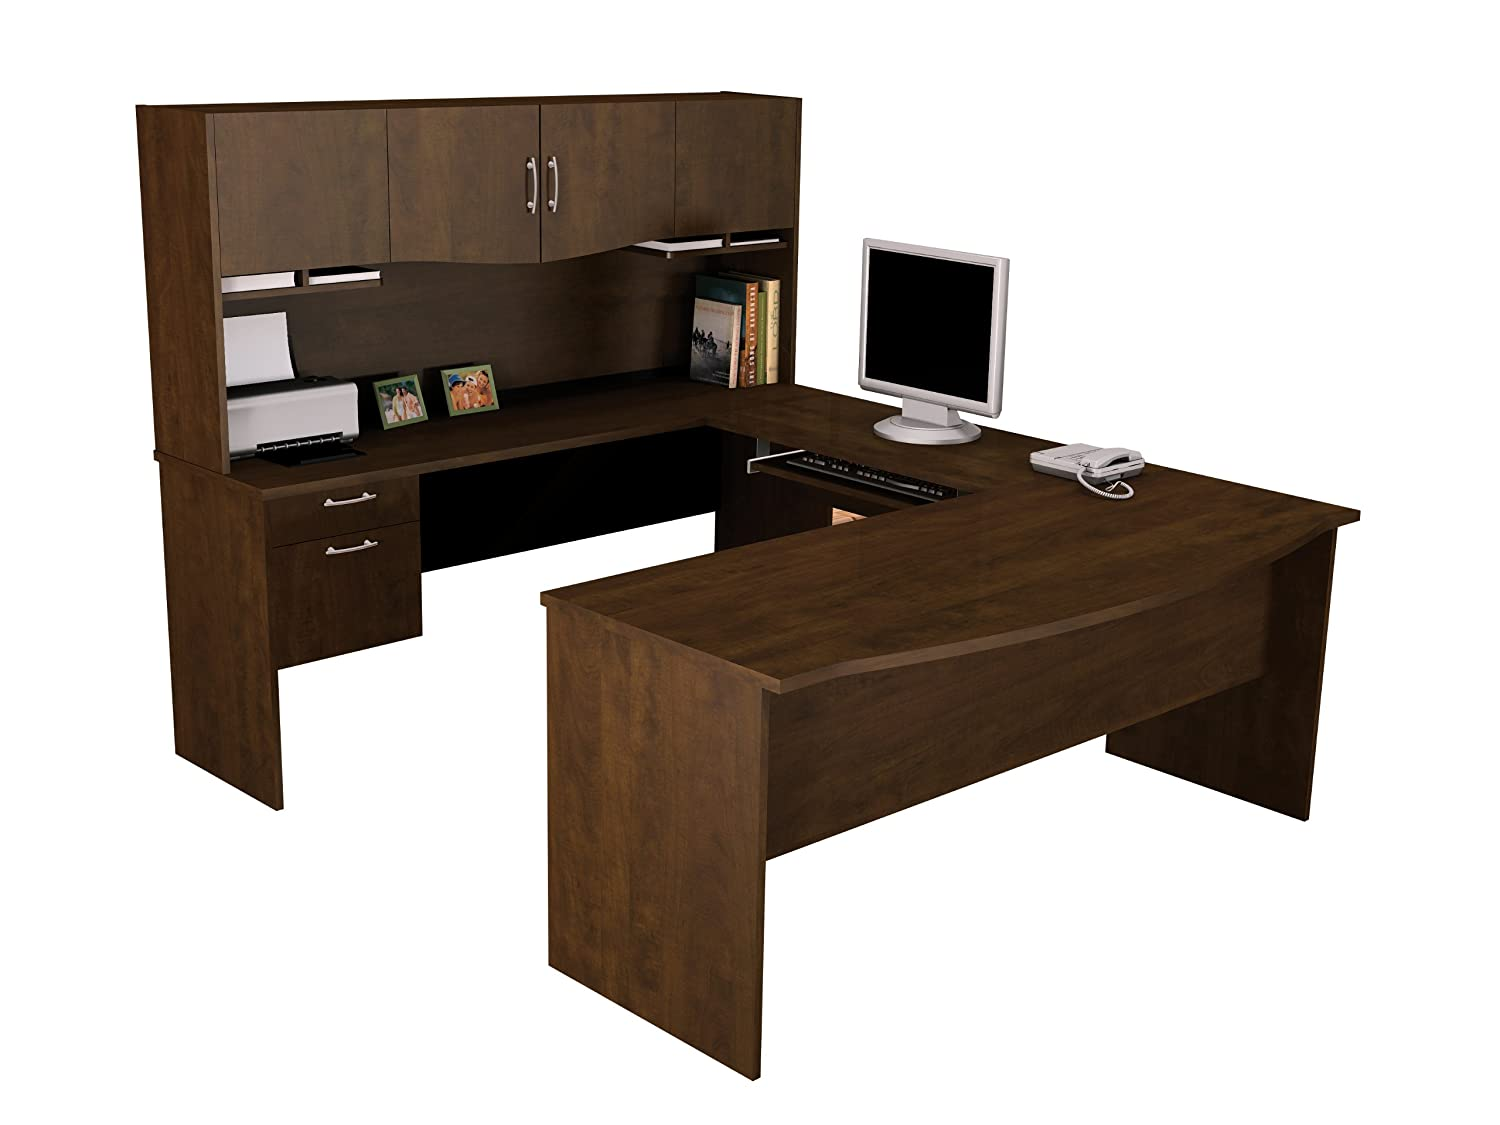 new shaped the shape desk executive merritt of hutch with image u kitchen in